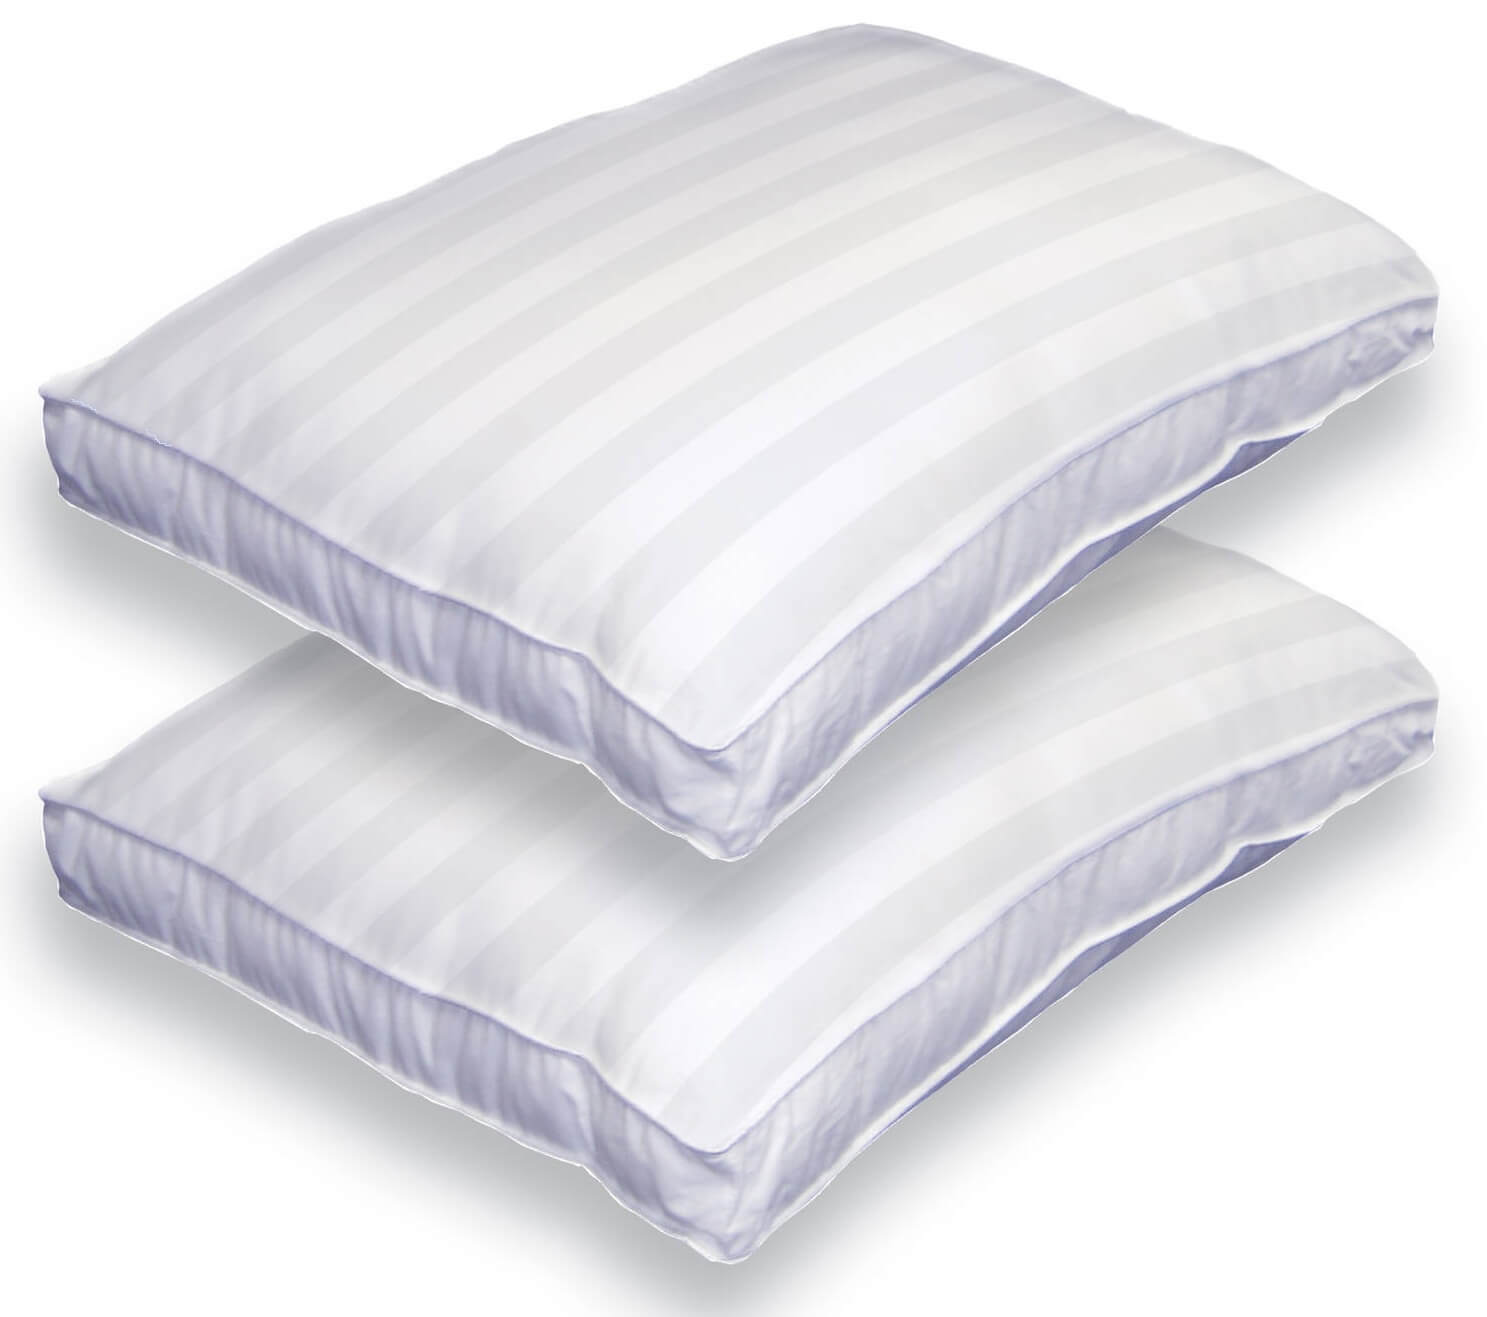 Gusset Gel Pillow by Sleep Restoration